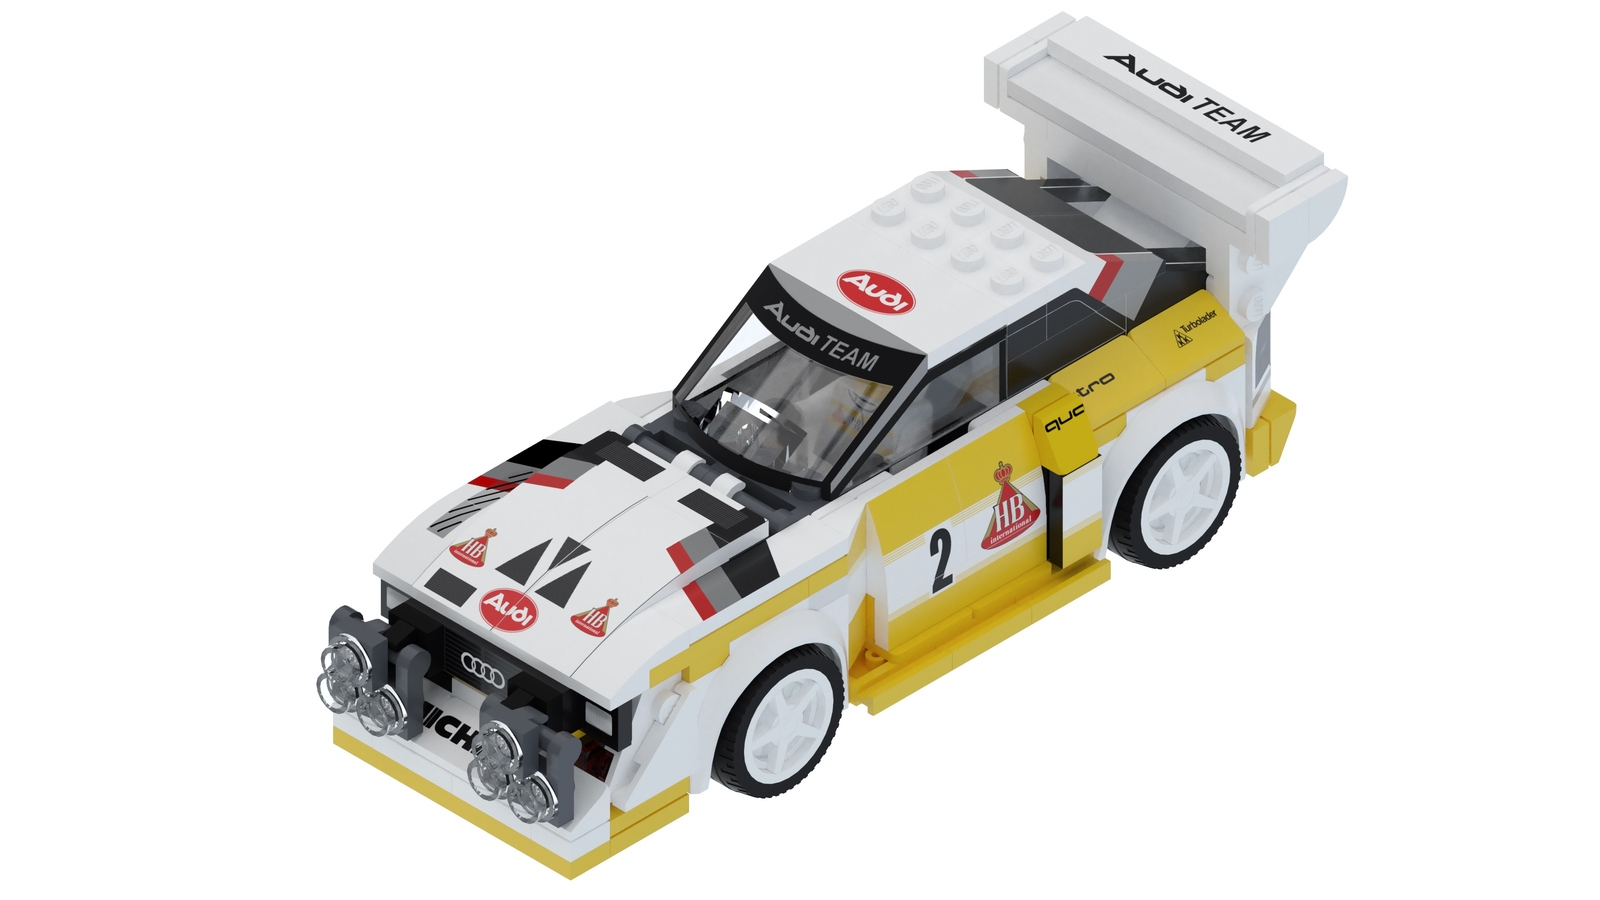 Audi Quattro S1 E2 Group B by Lego (1)